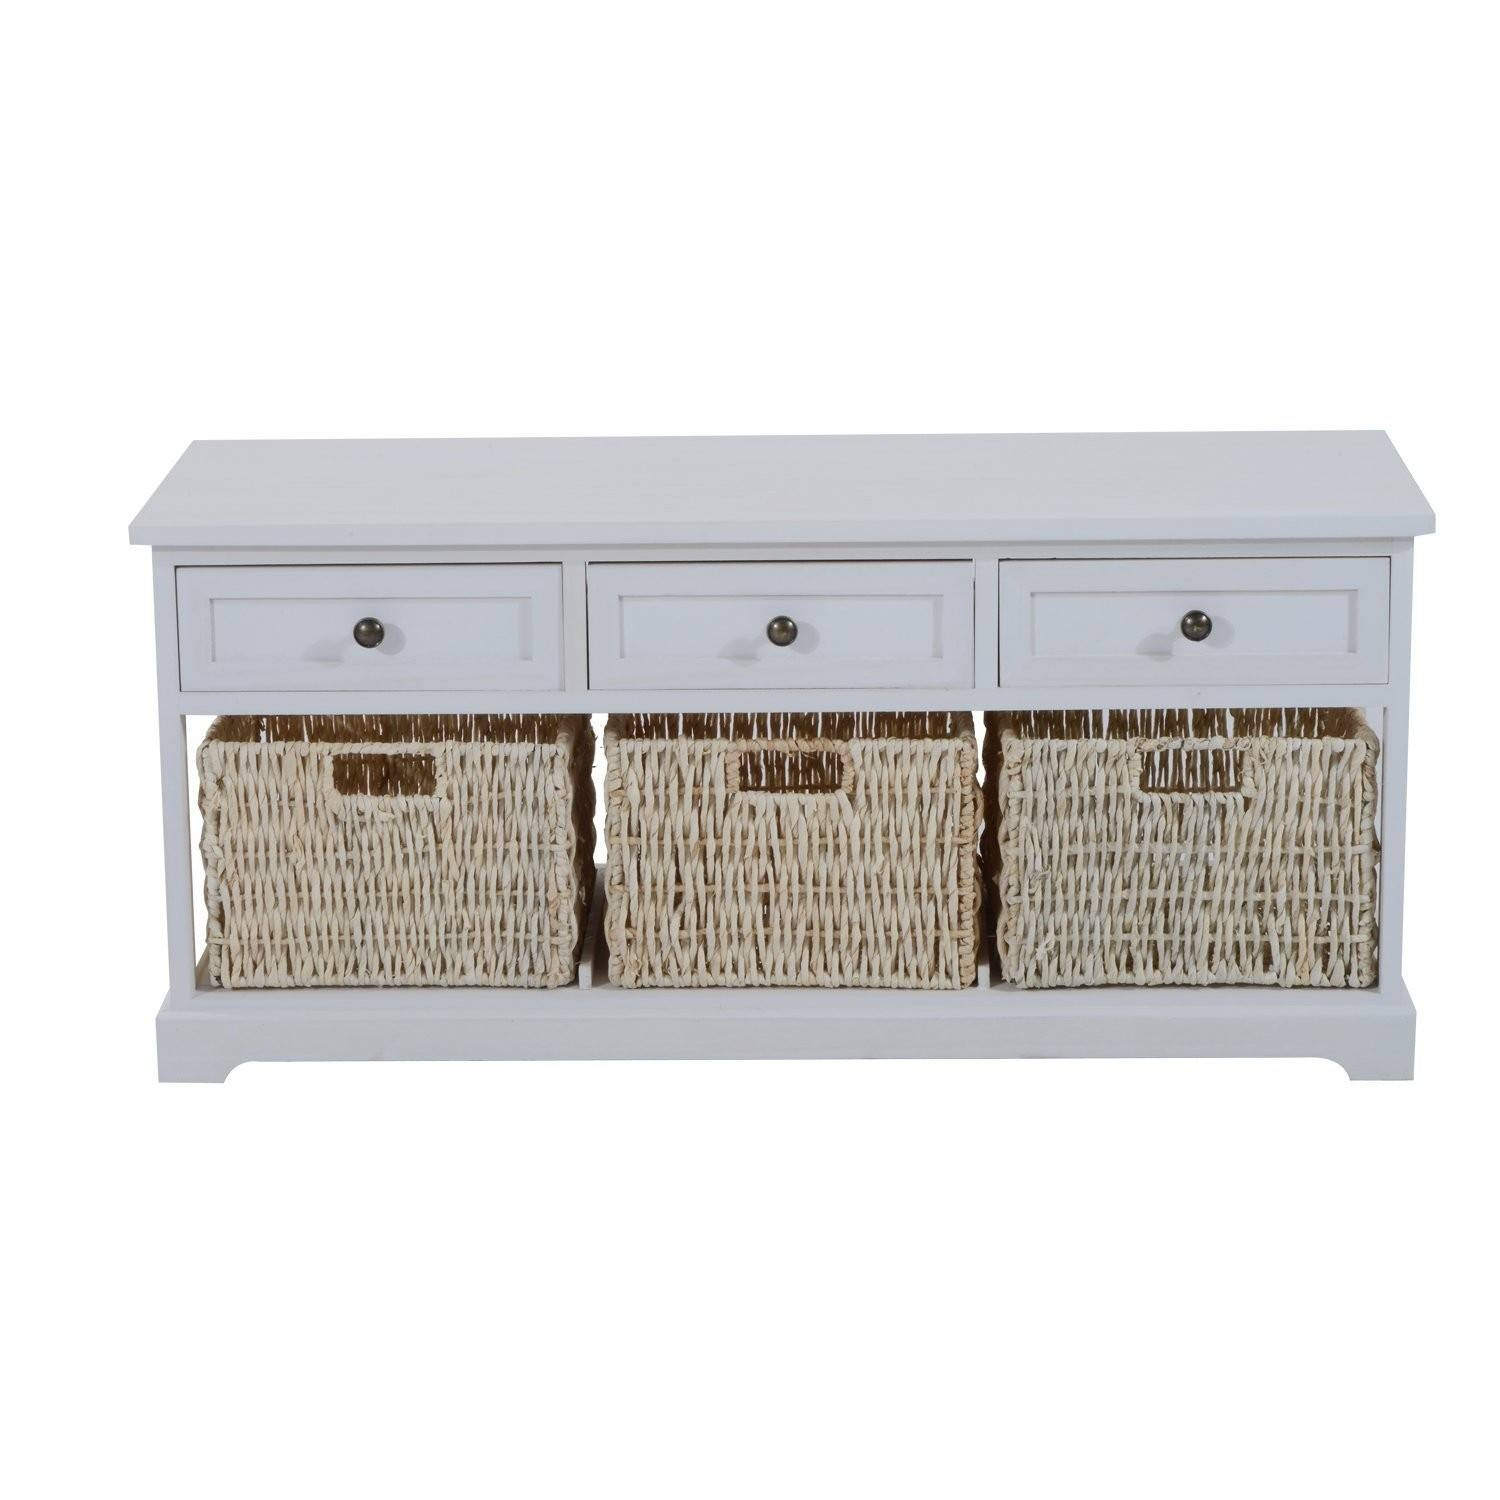 Wooden Coffee Table With Seagrass Wicker Storage Baskets – Ideal regarding Coffee Table With Wicker Basket Storage (Image 30 of 30)